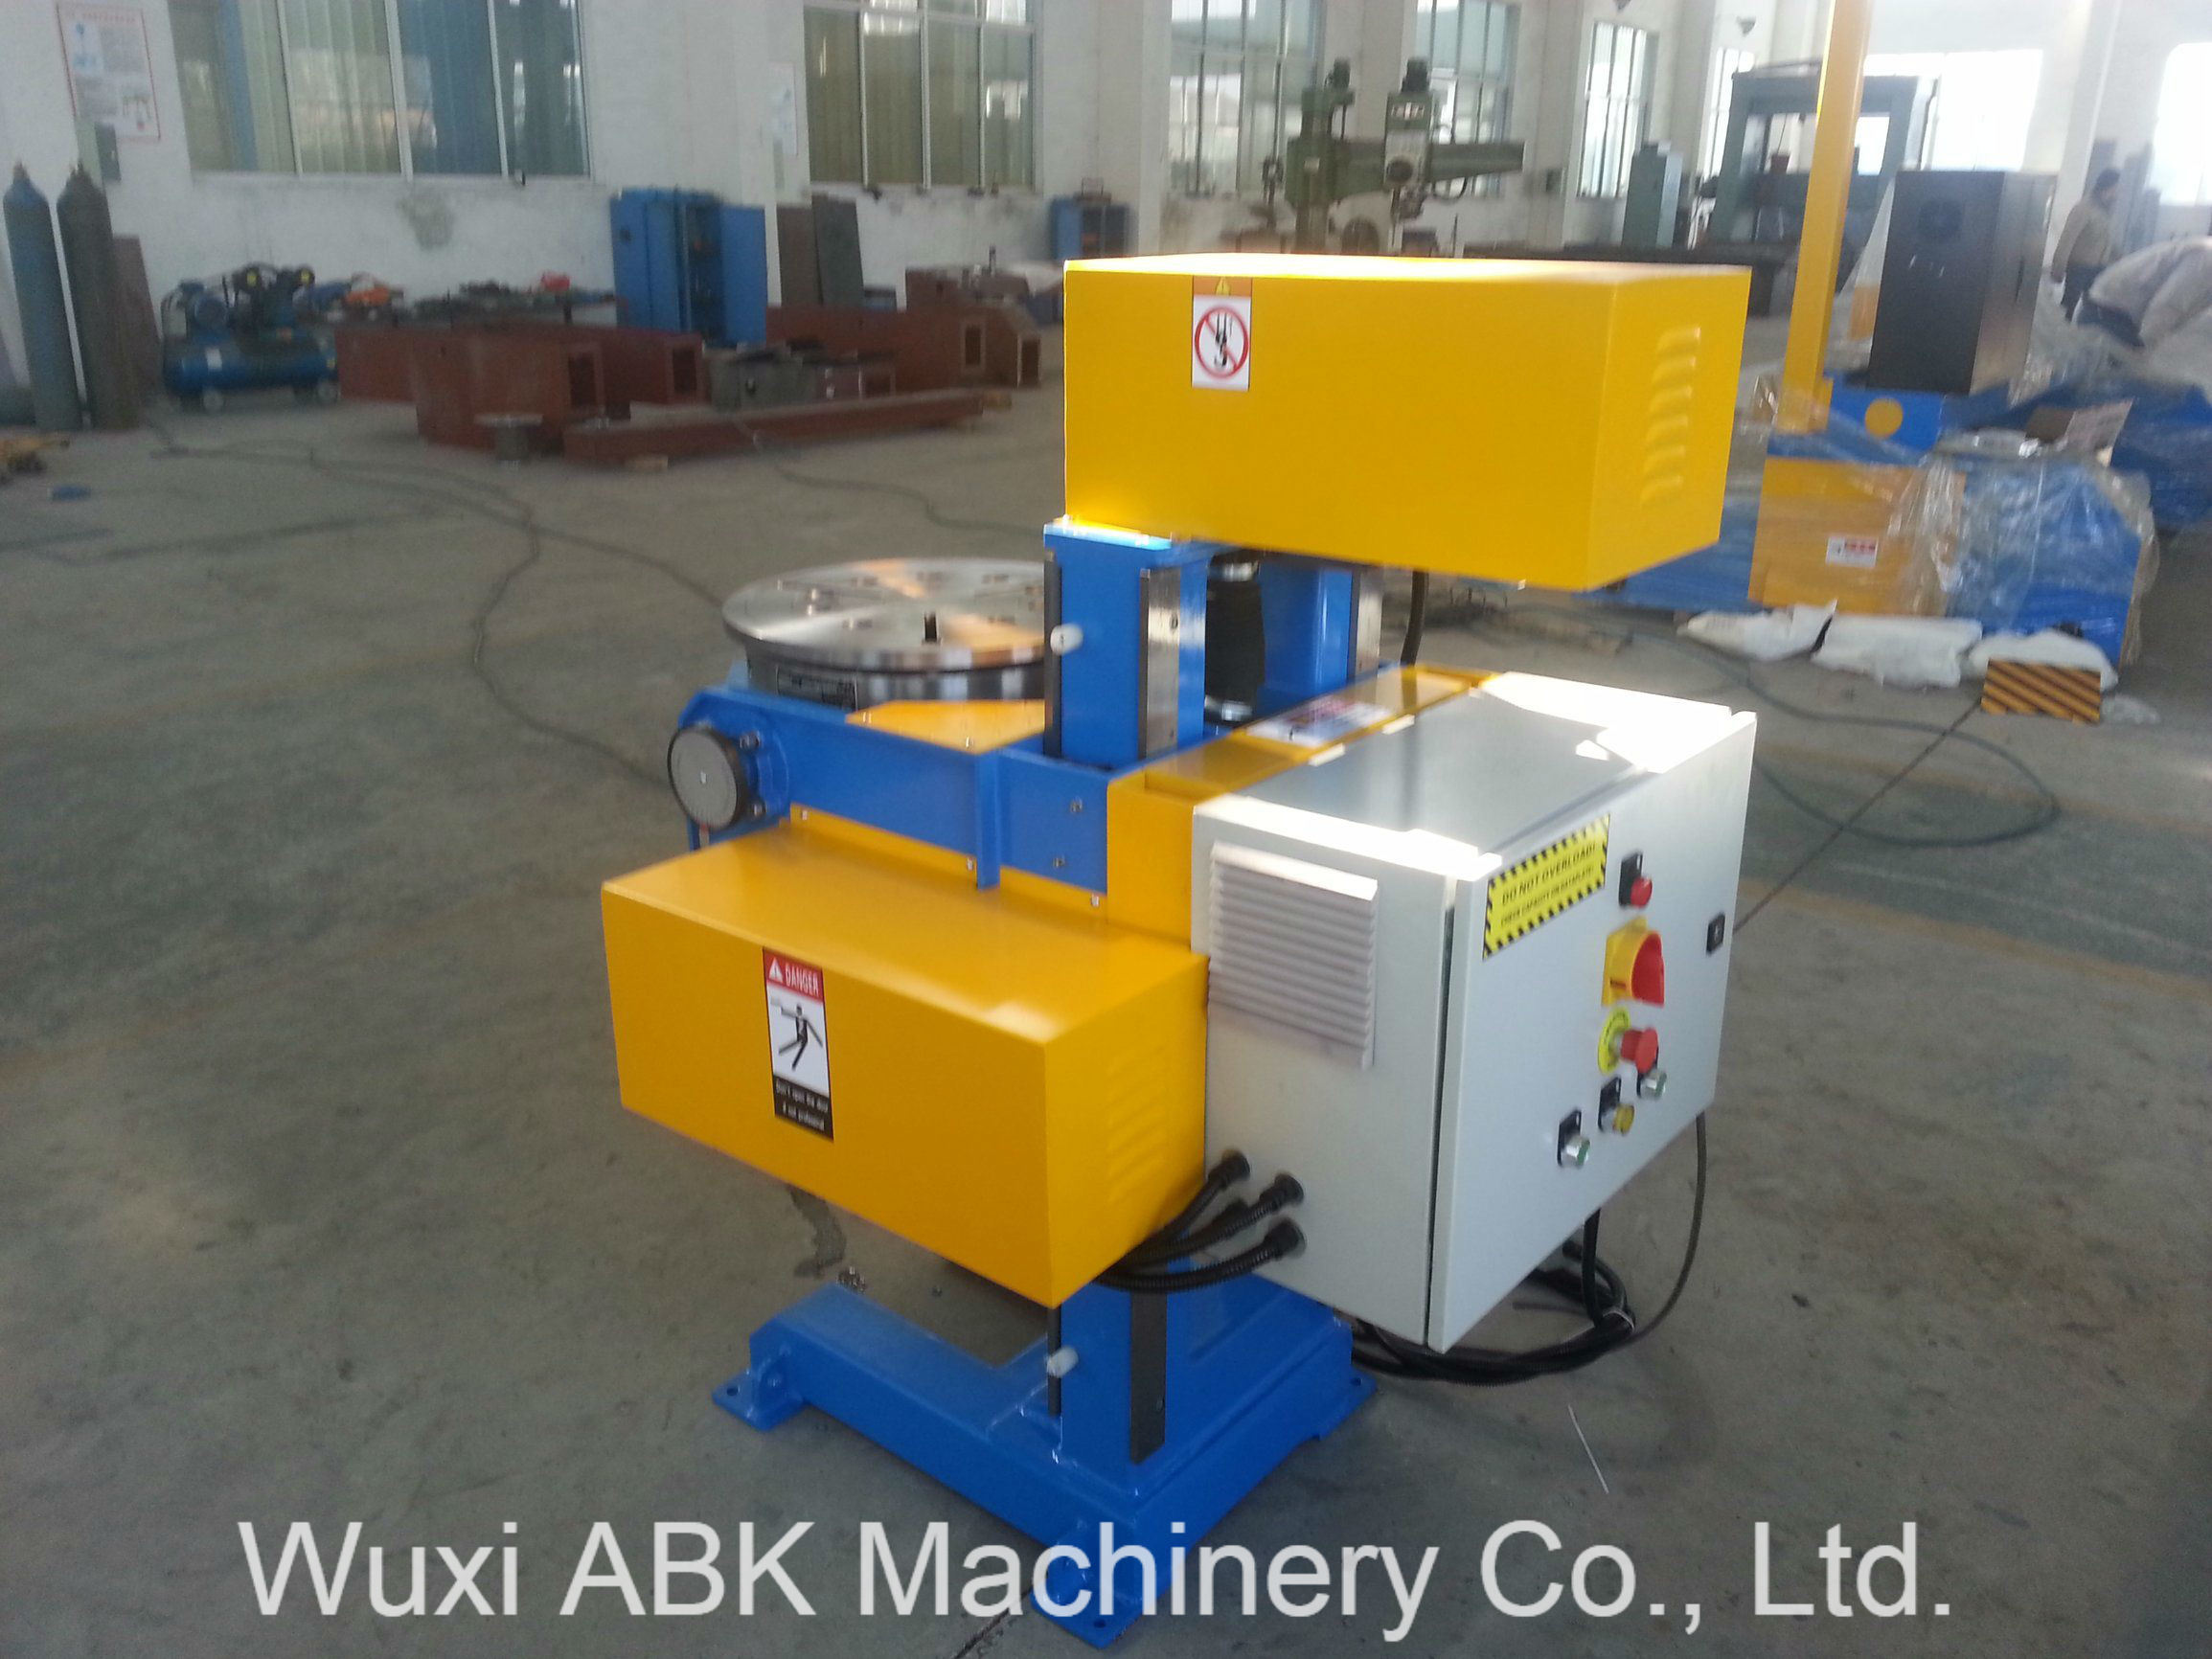 Welding Table For Sale >> Hot Item Hbj 50 Flipping Rotating Automatic Welding Table Welding Positioners For Sale